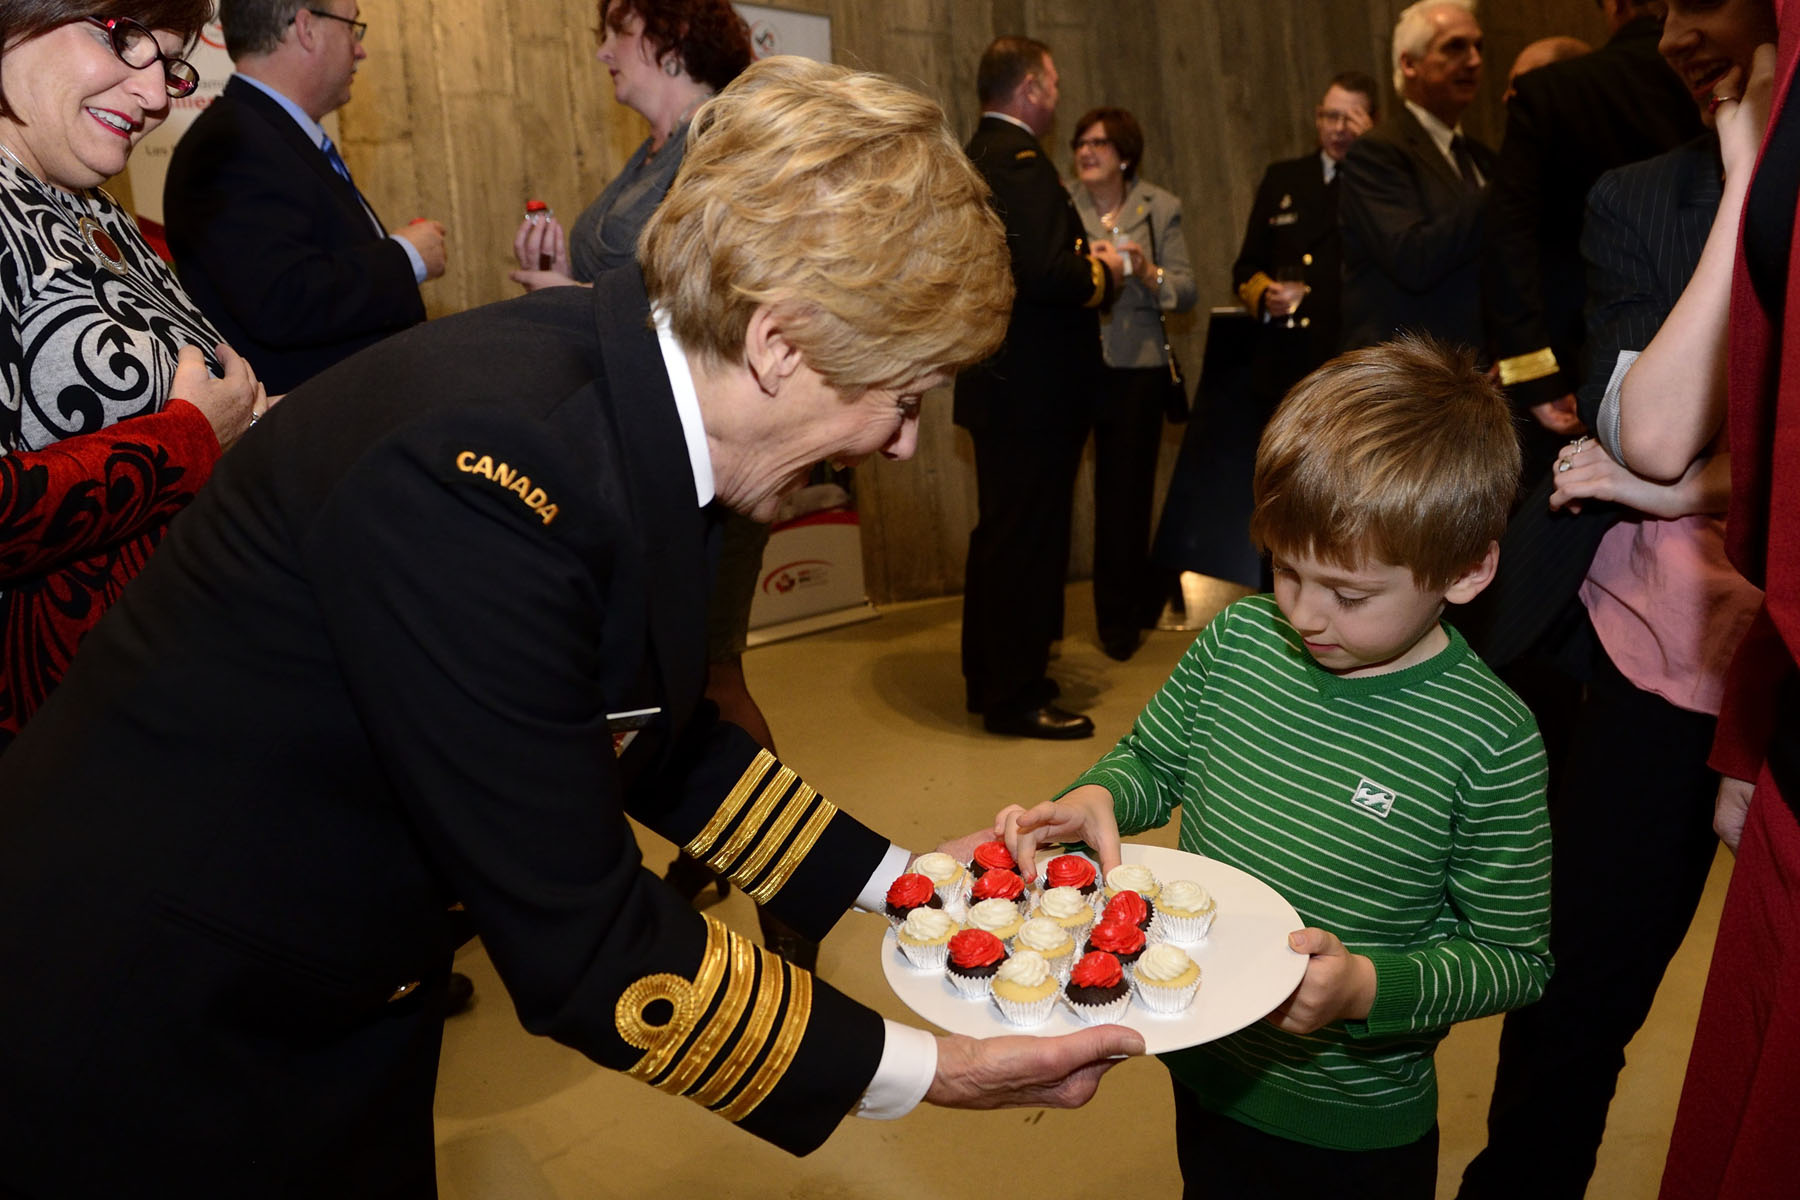 As patron of the Program, Mrs. Johnston took the time to interact with children of all ages. The Military Family Services Program is delivered locally by Canadian/Military Family Resource Centres (MFRCs) in 44 Canadian Forces communities in Canada, the United States and Europe. Everywhere military families are posted, MFRCs deliver unique local services, as well as a range of core programs.